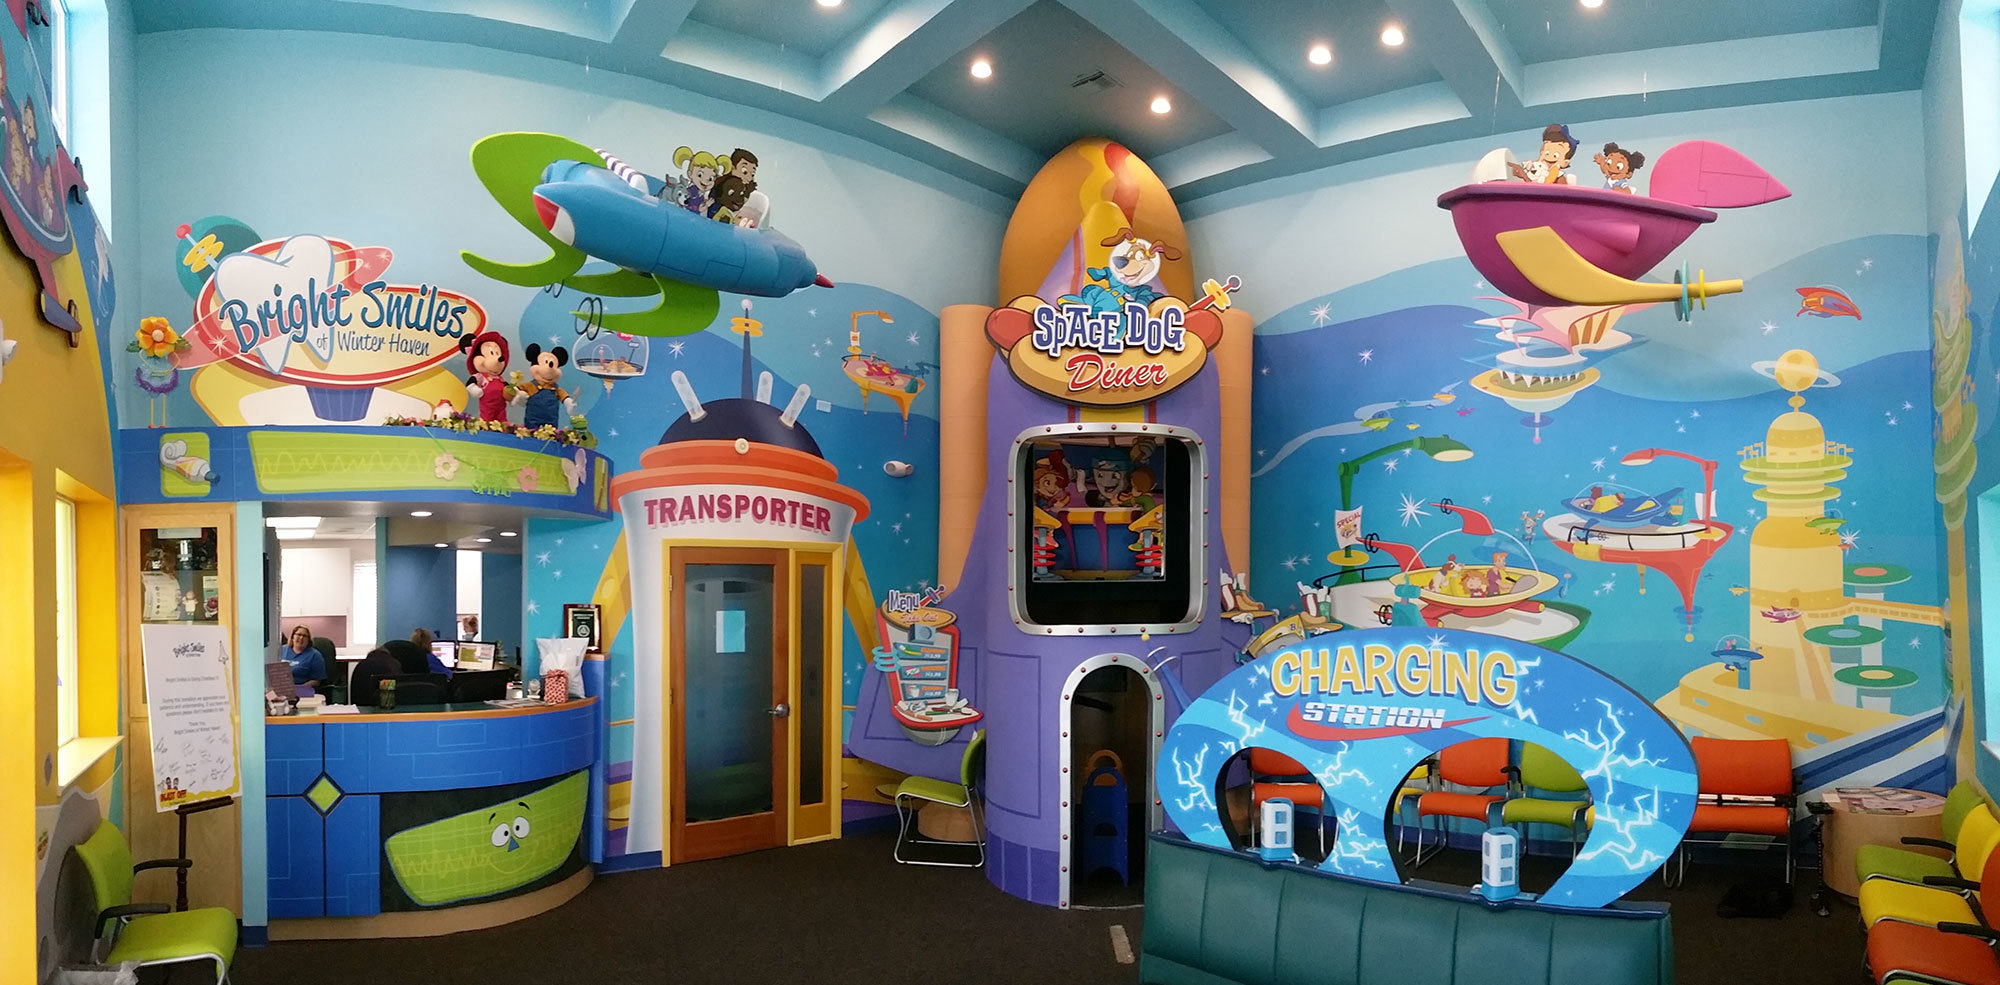 Outerspace Future World Themed Environment at Bright Smiles Pediatric Dentistry